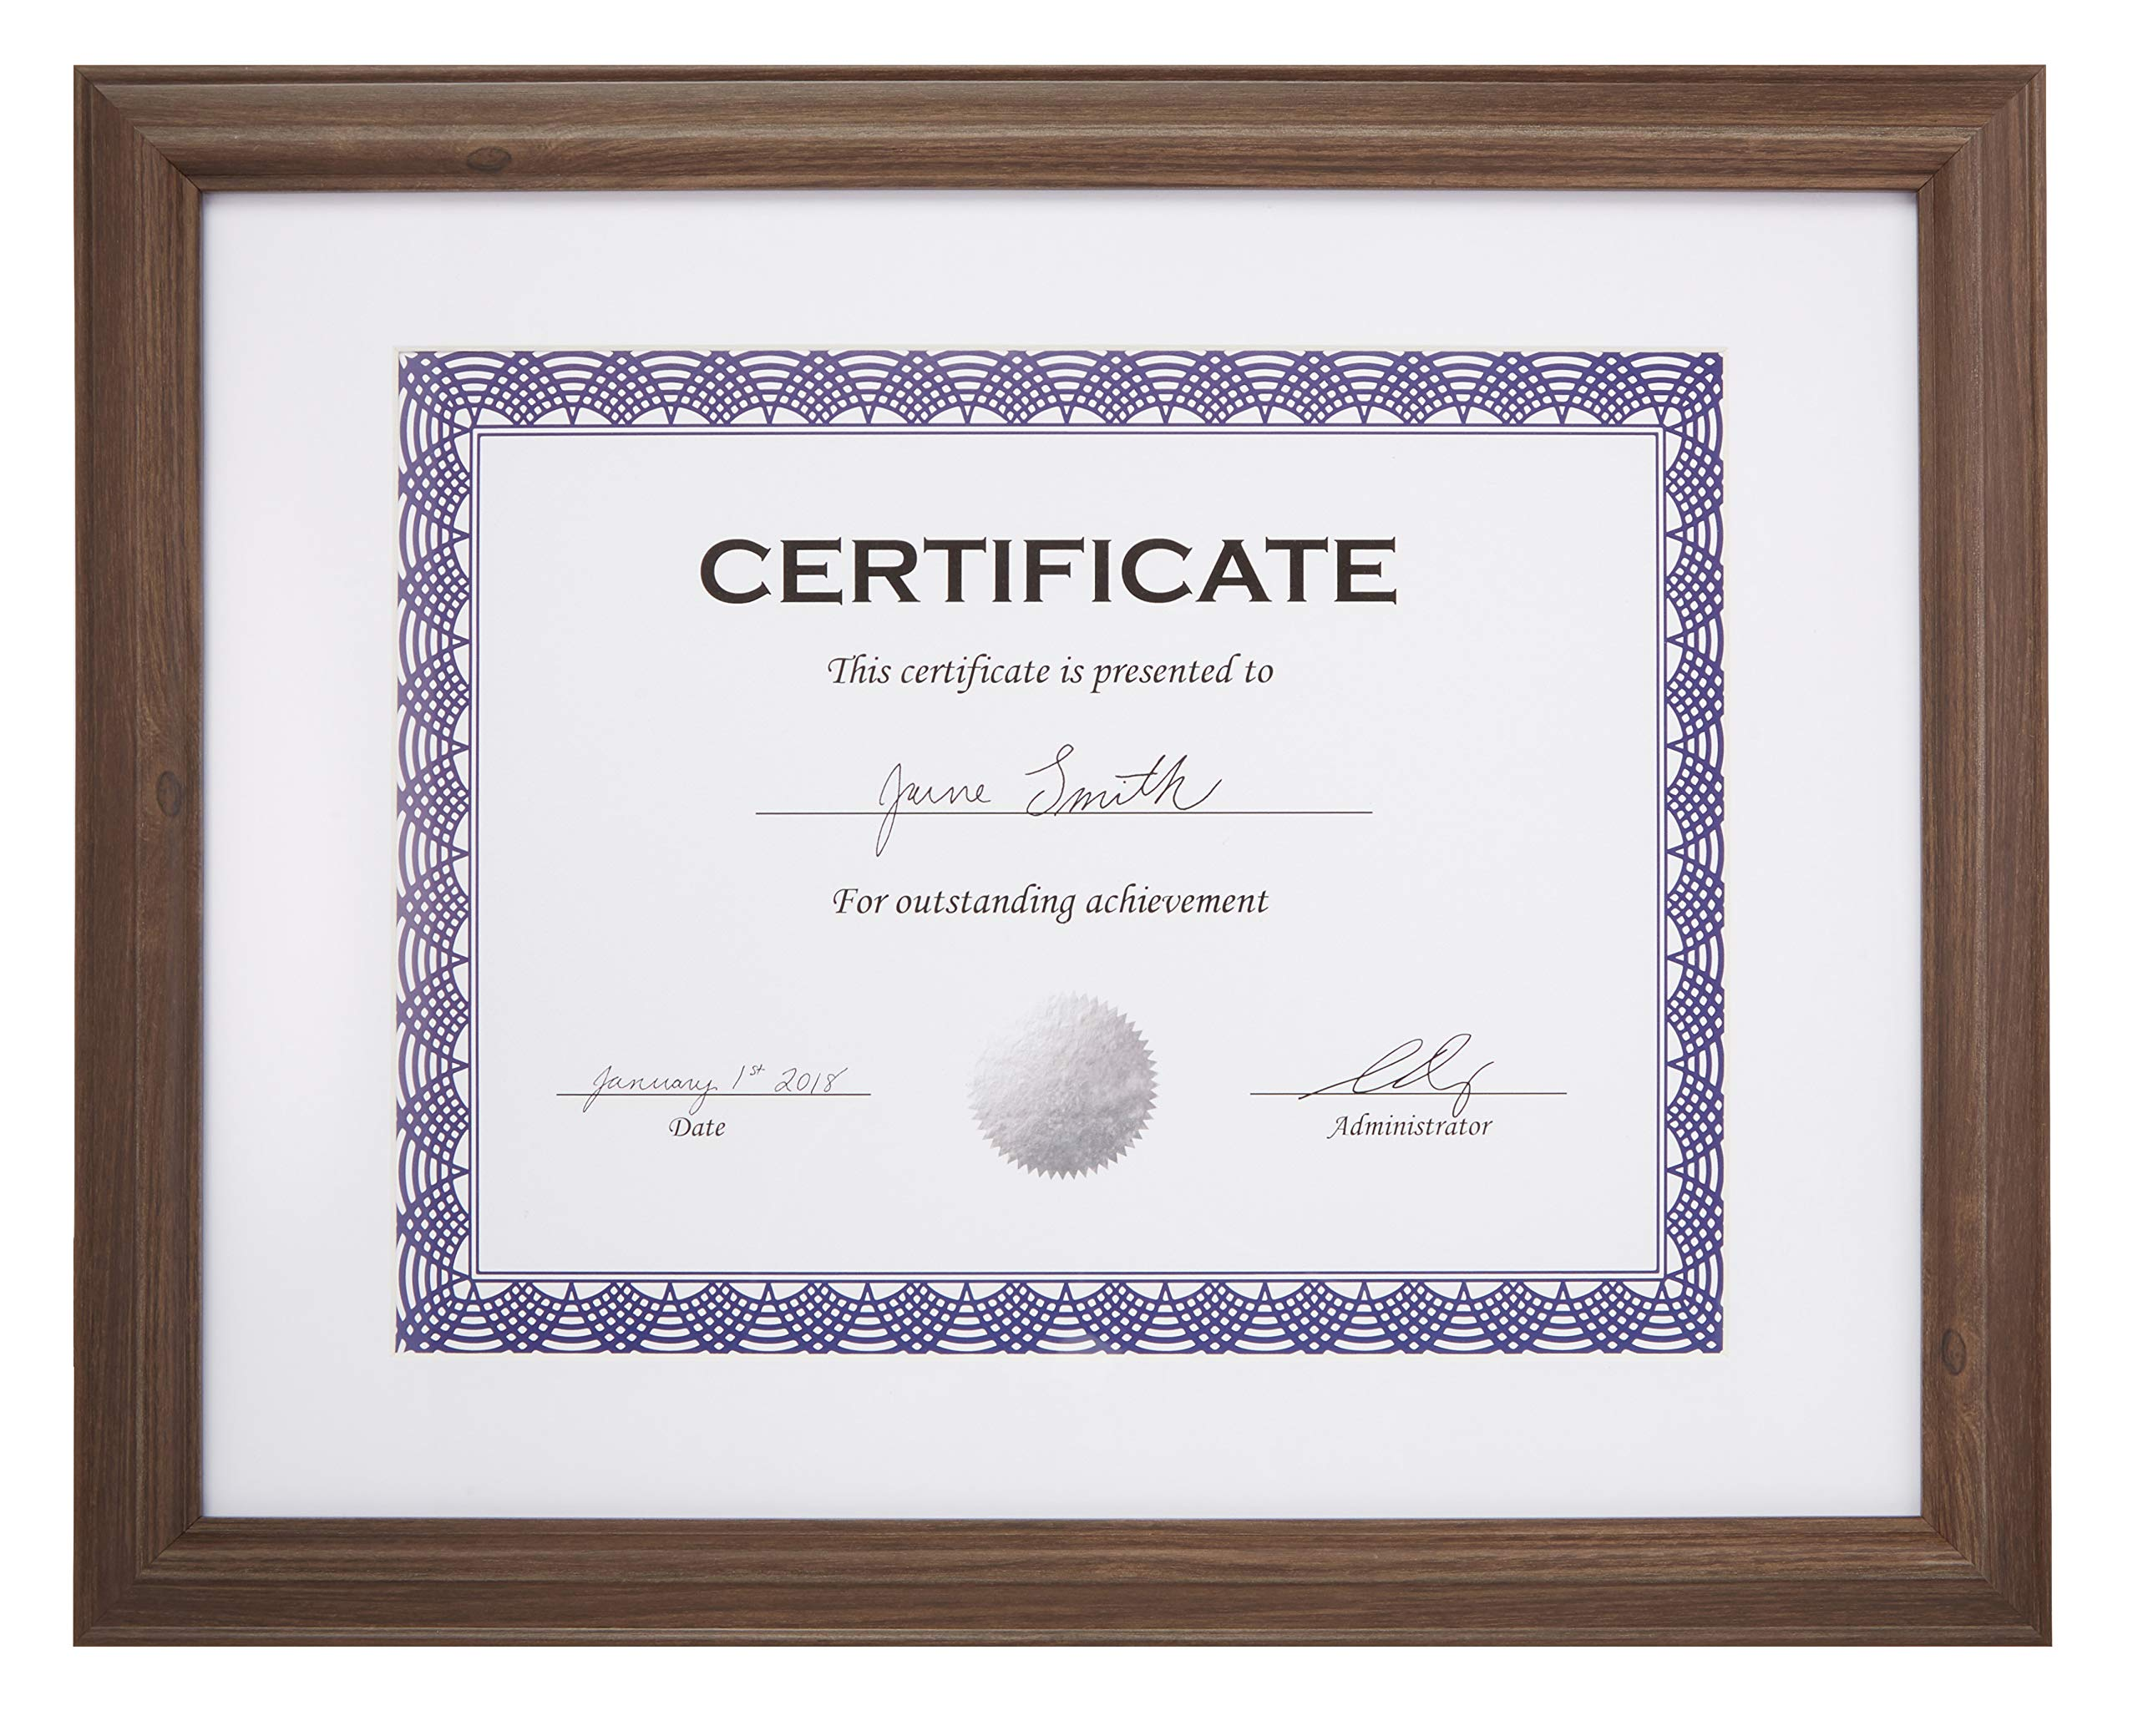 AmazonBasics Certificate Document Frame With Mat, 8.5'' x 11'', Aged Walnut, 3-Pack